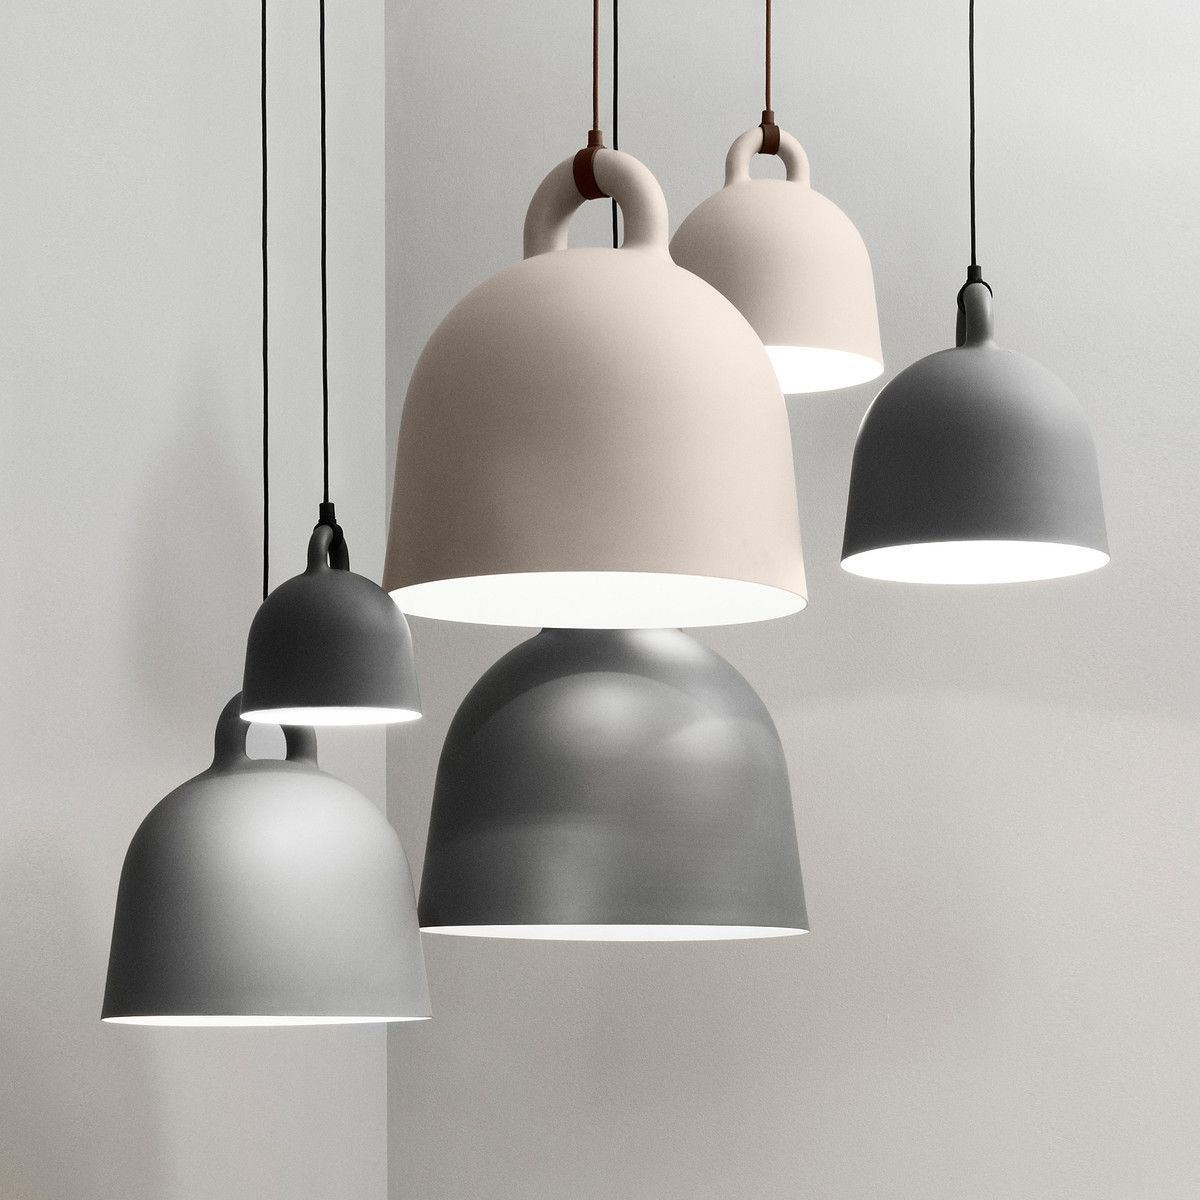 The Expression Of The Bell Pendant Lamp Is Robust The Form Is